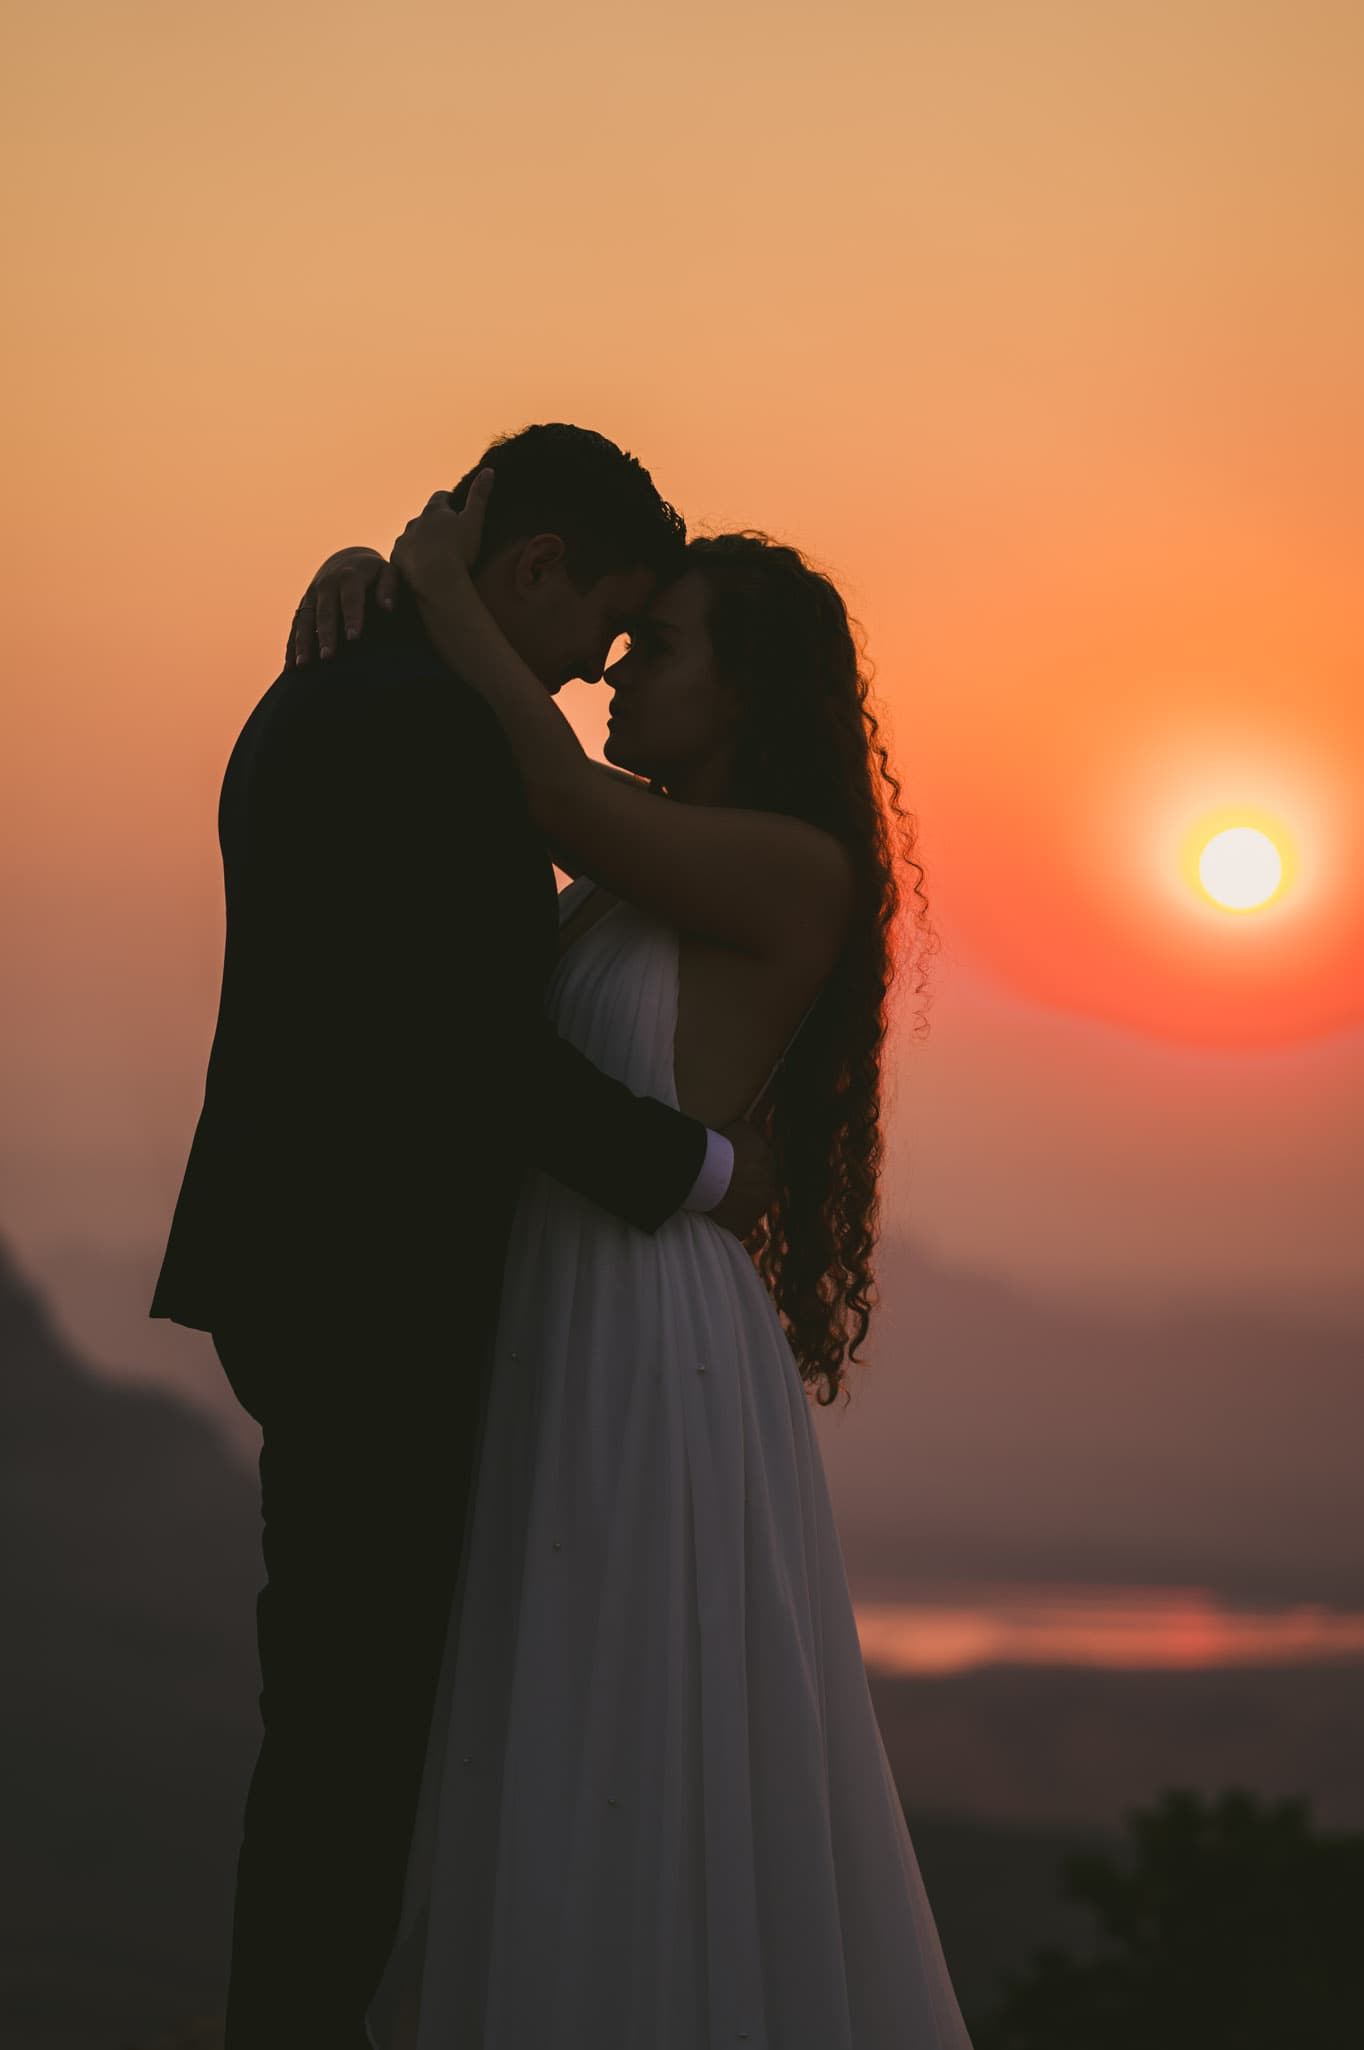 Sunrise wedding photo at Dead Horse Point State Park